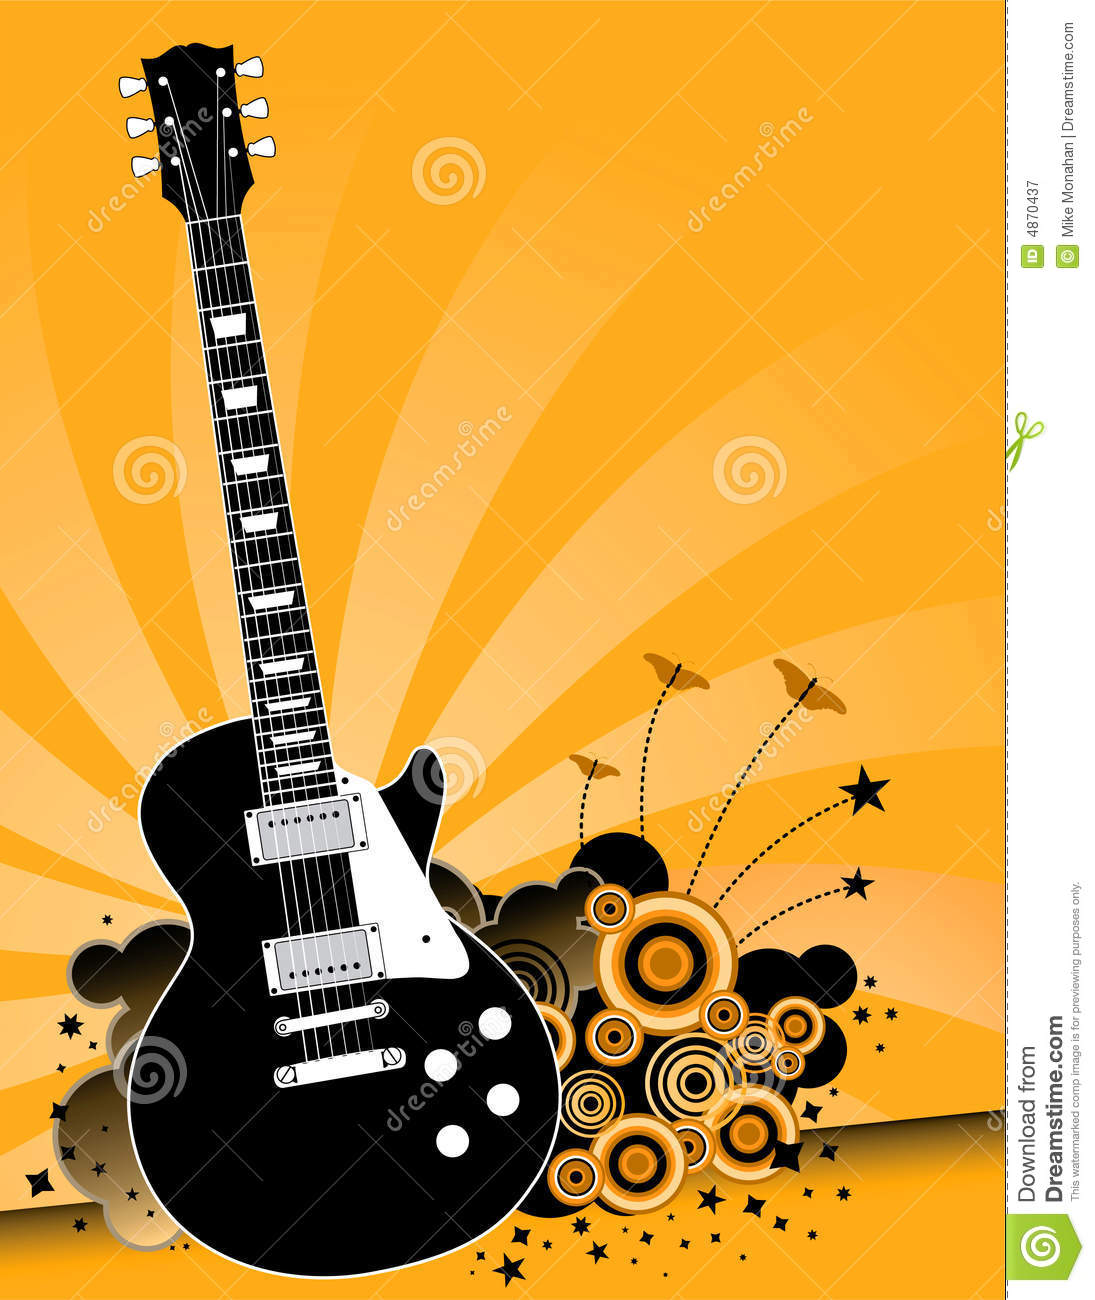 Electric Guitar Rock Music Royalty Free Stock Photography - Image ...